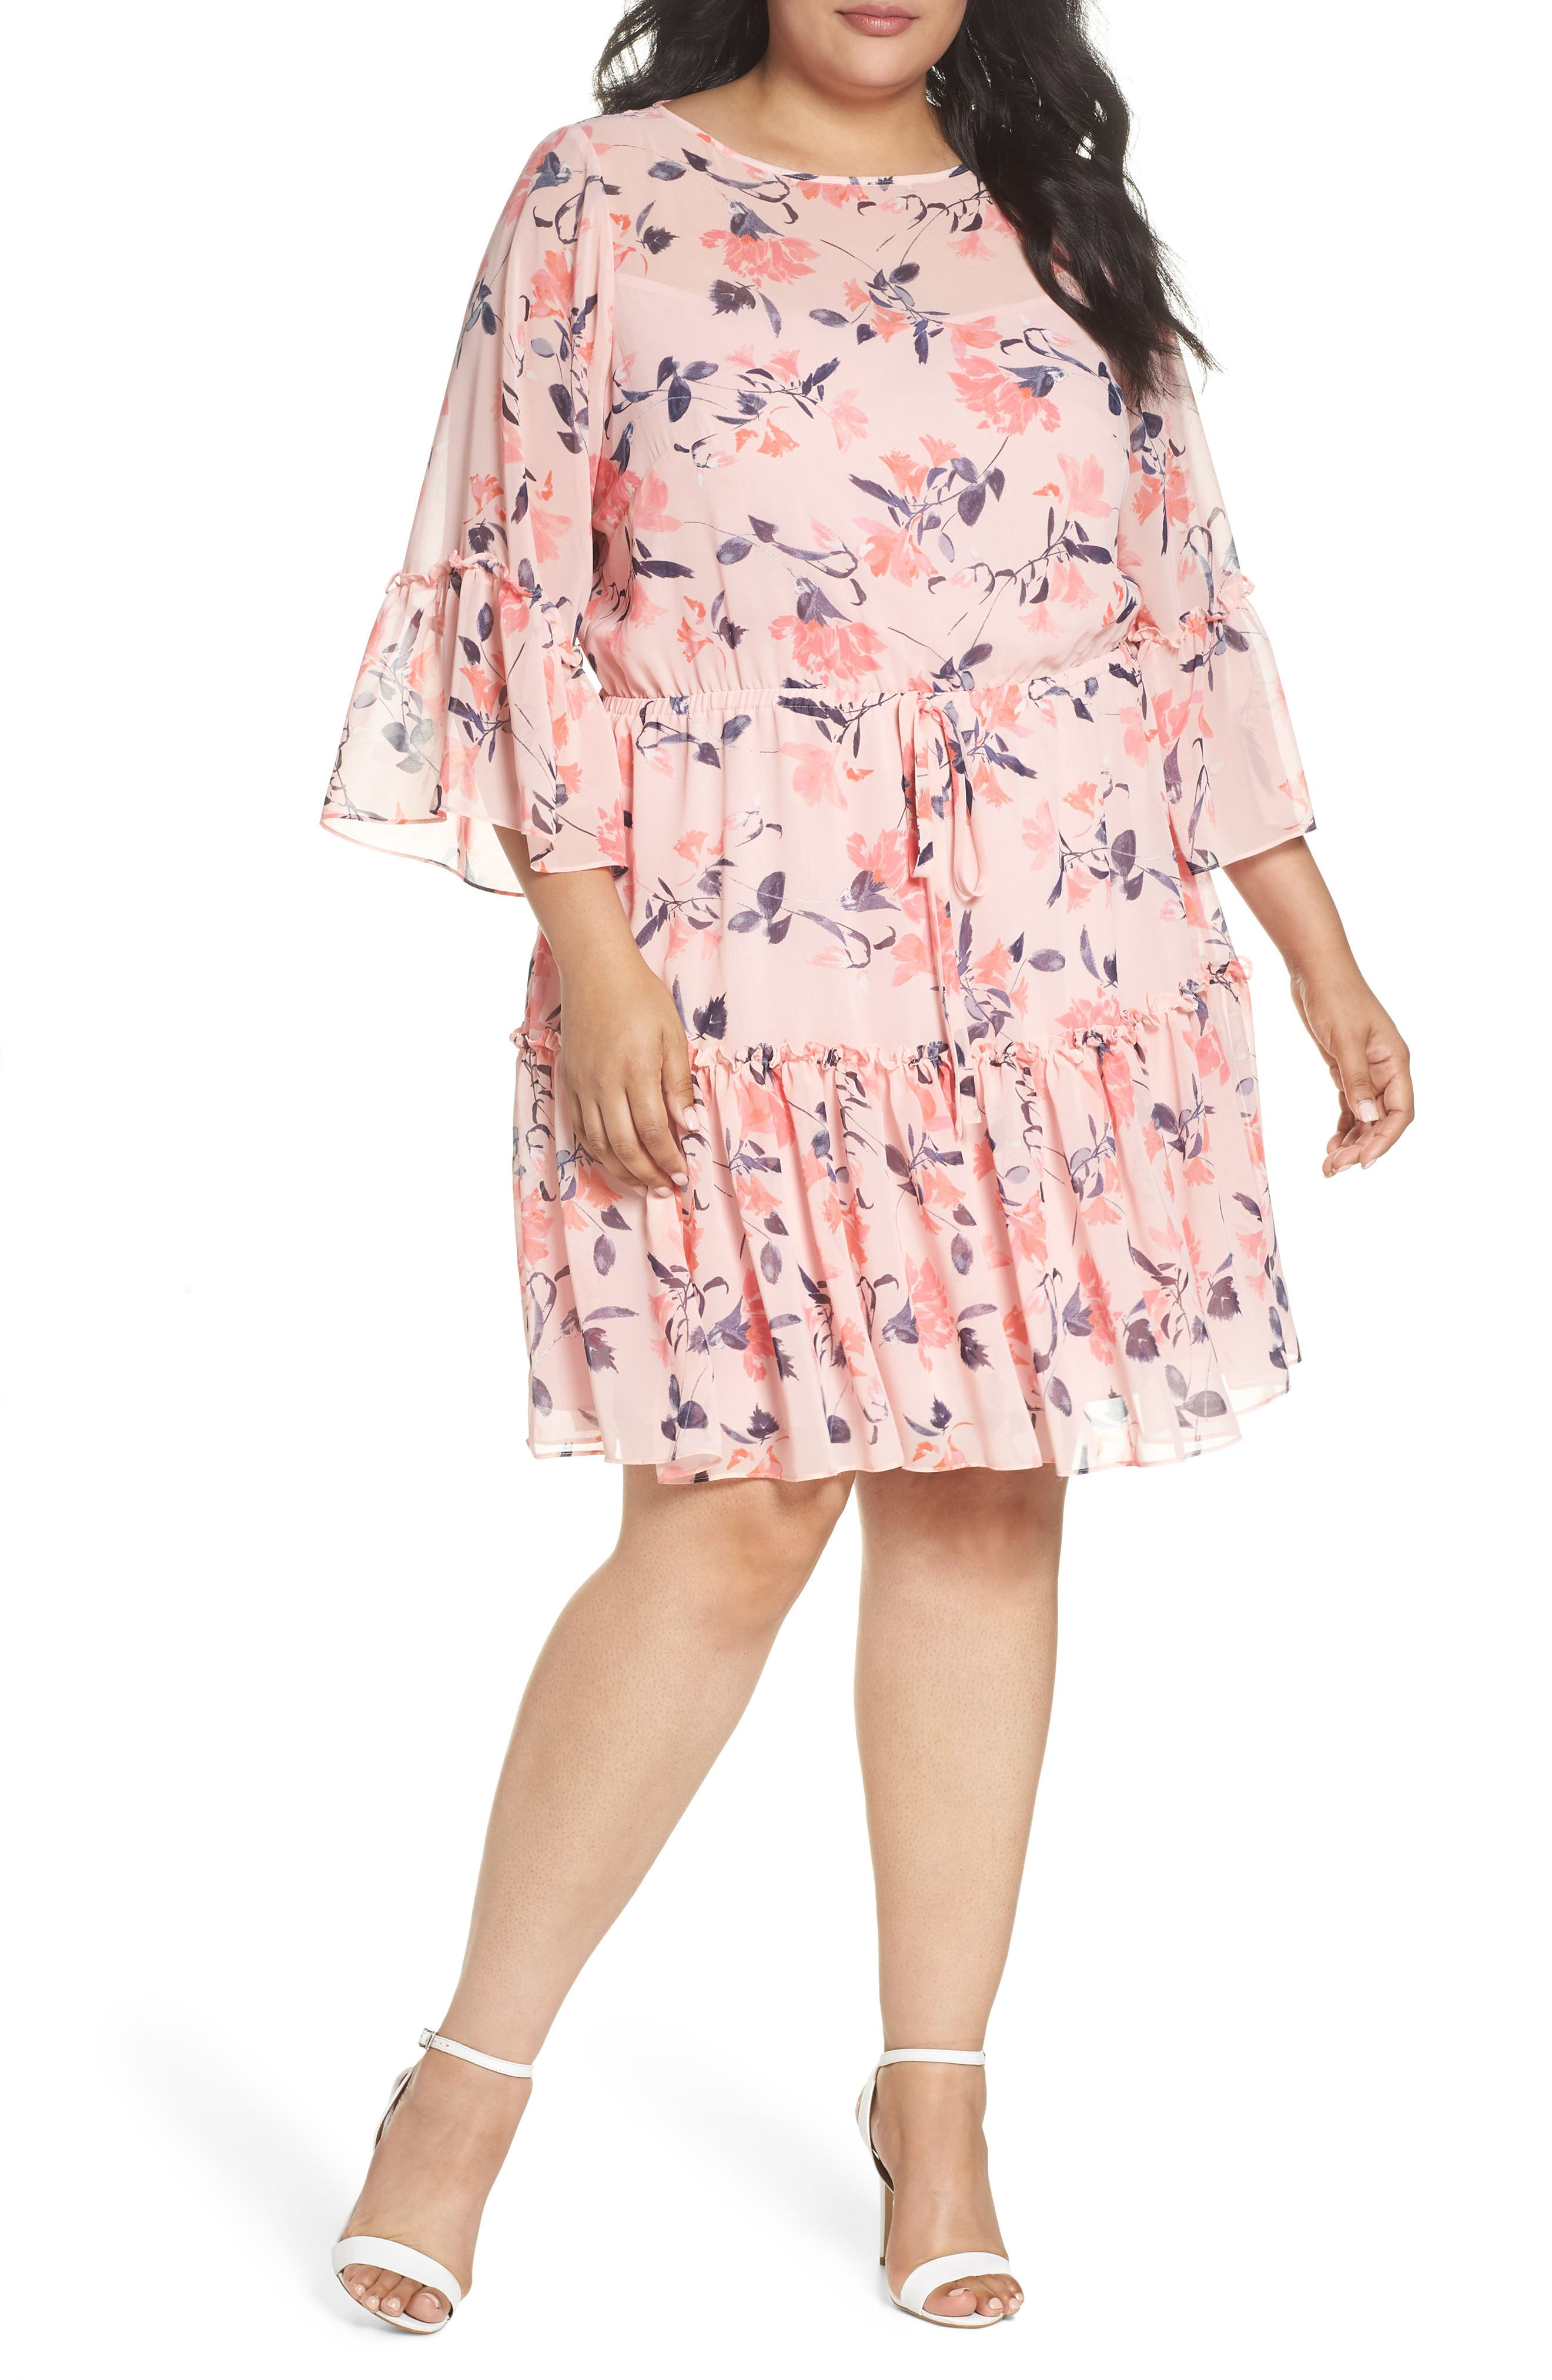 Elza J Floral Bell Sleeve Chiffon Dress,                         Main,                         color, 684